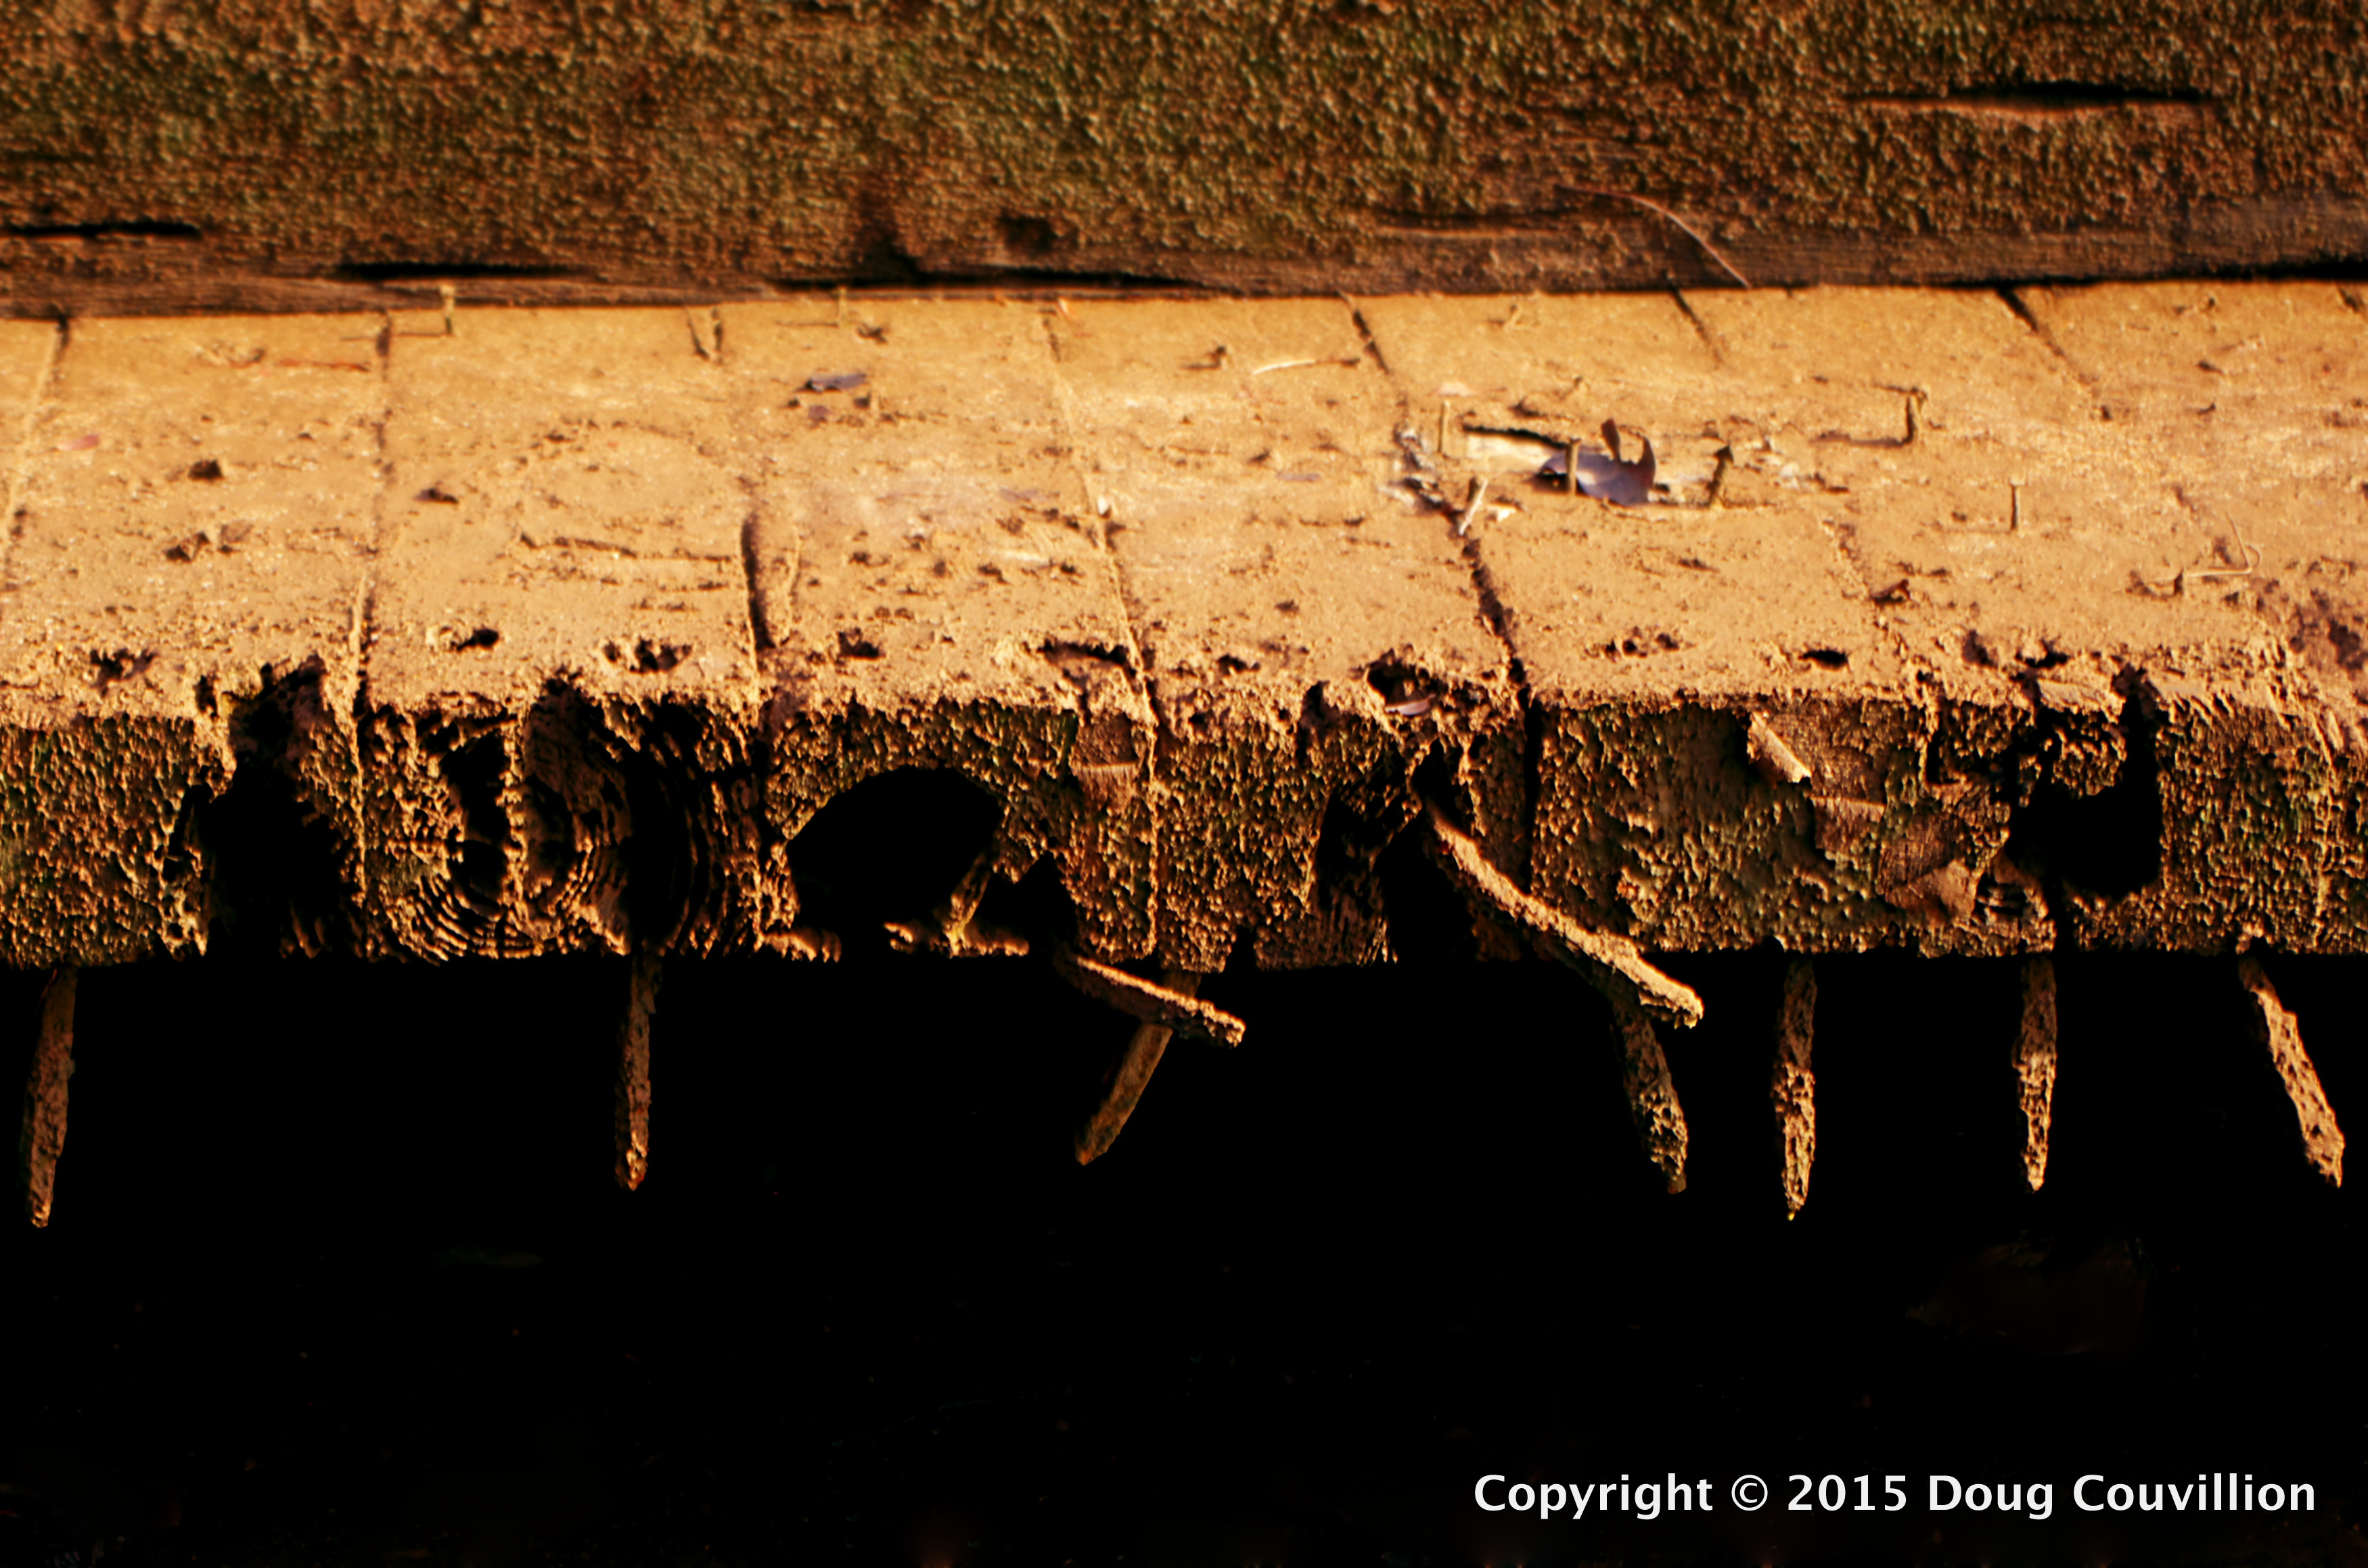 photograph of old muddy decking with large nails